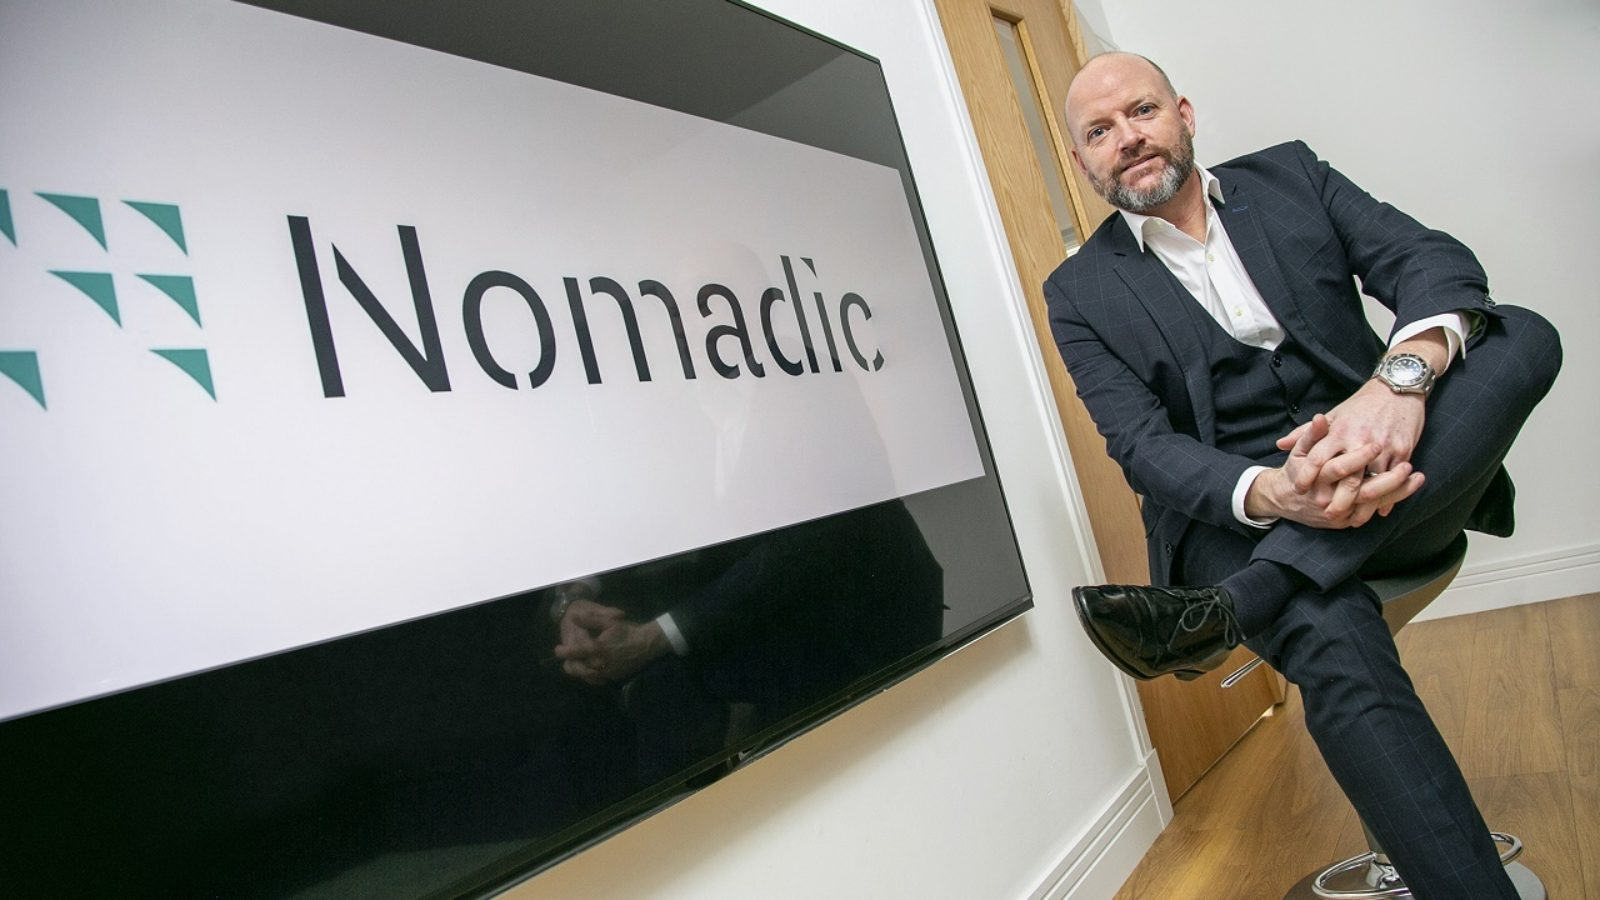 Aberdeen's key role in Nomadic – a global  immigration technology innovation